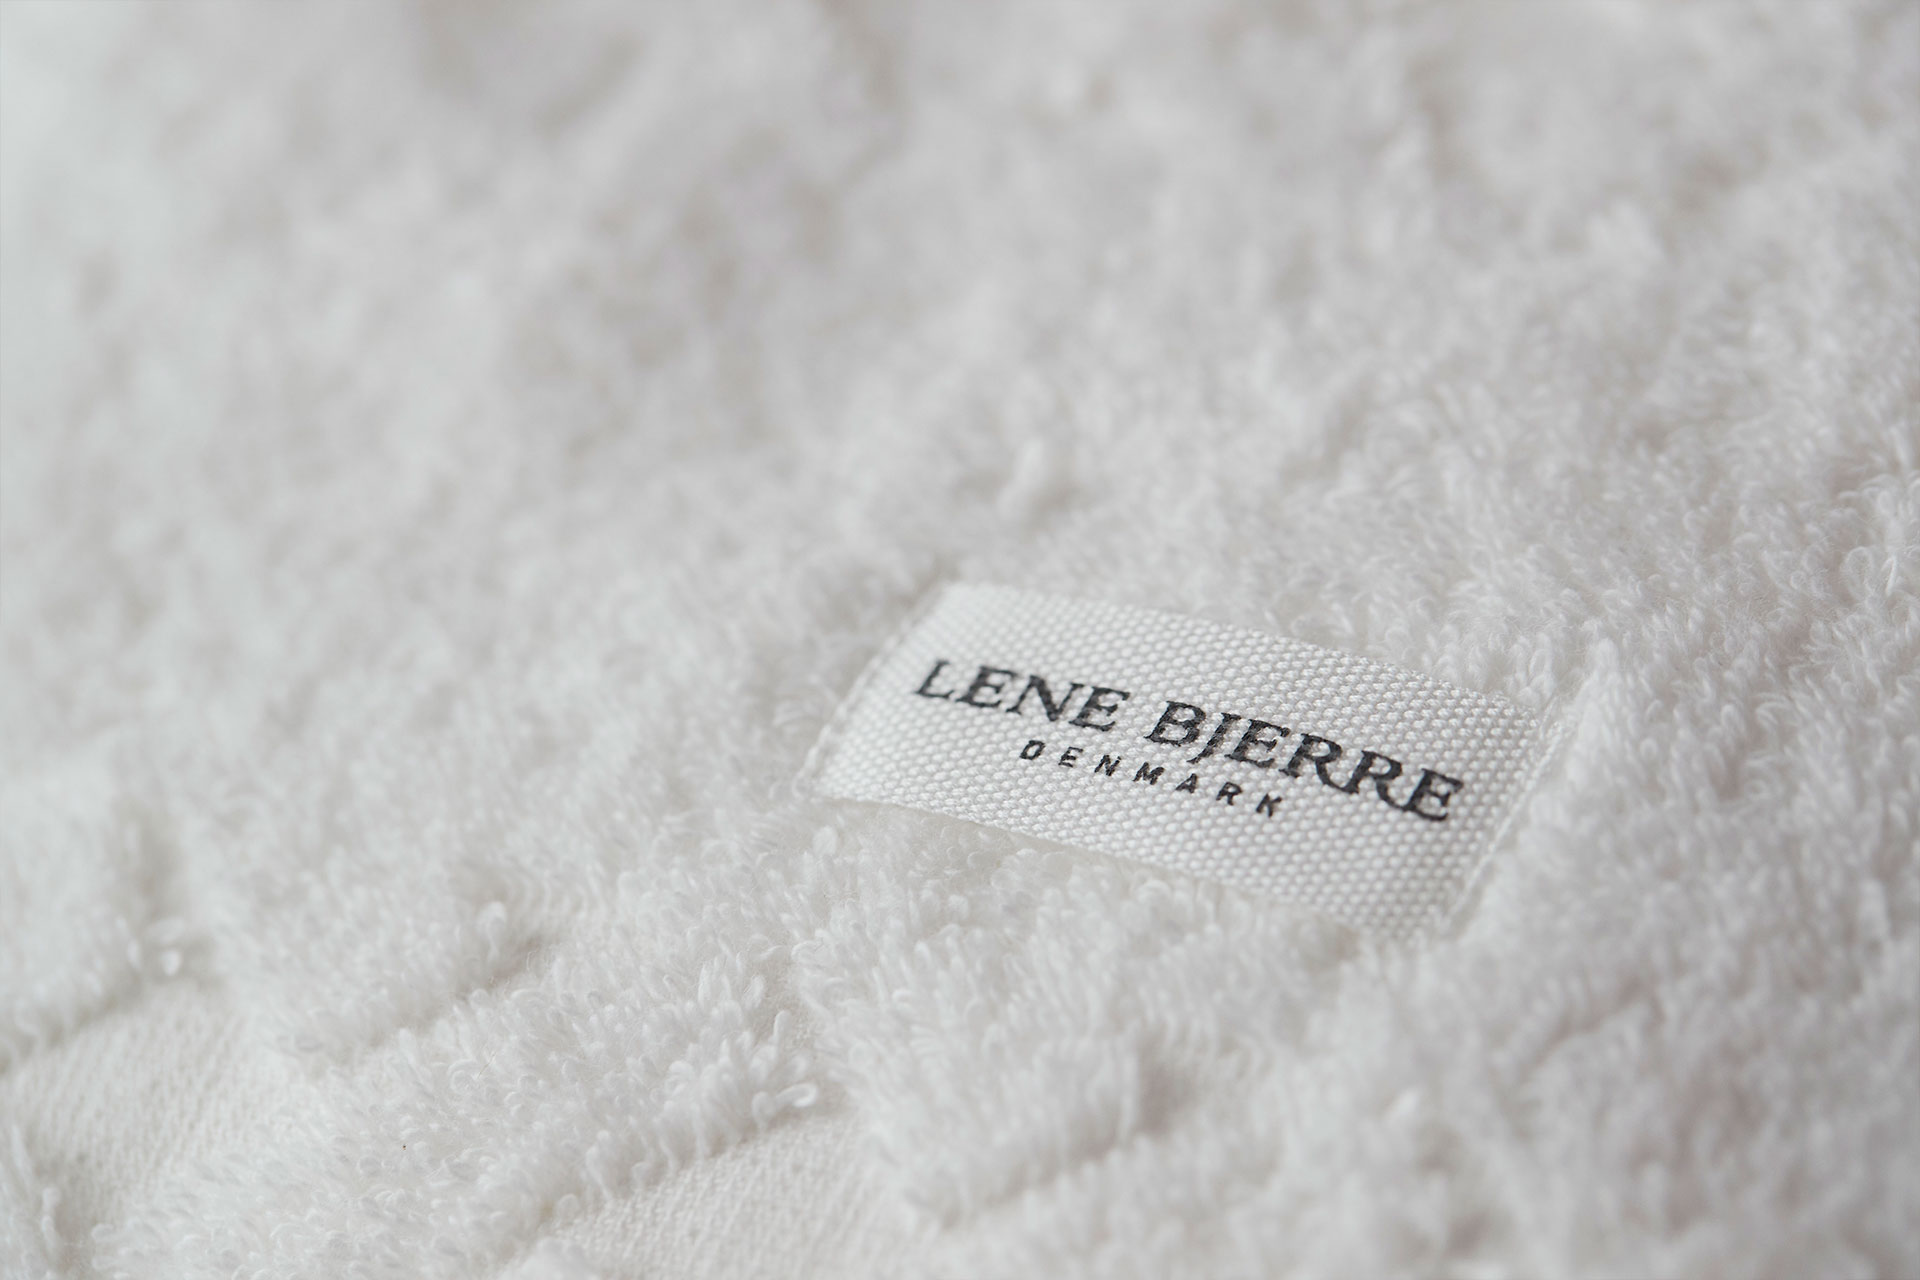 Decorate your home with OEKO-TEX® textiles - Lene Bjerre